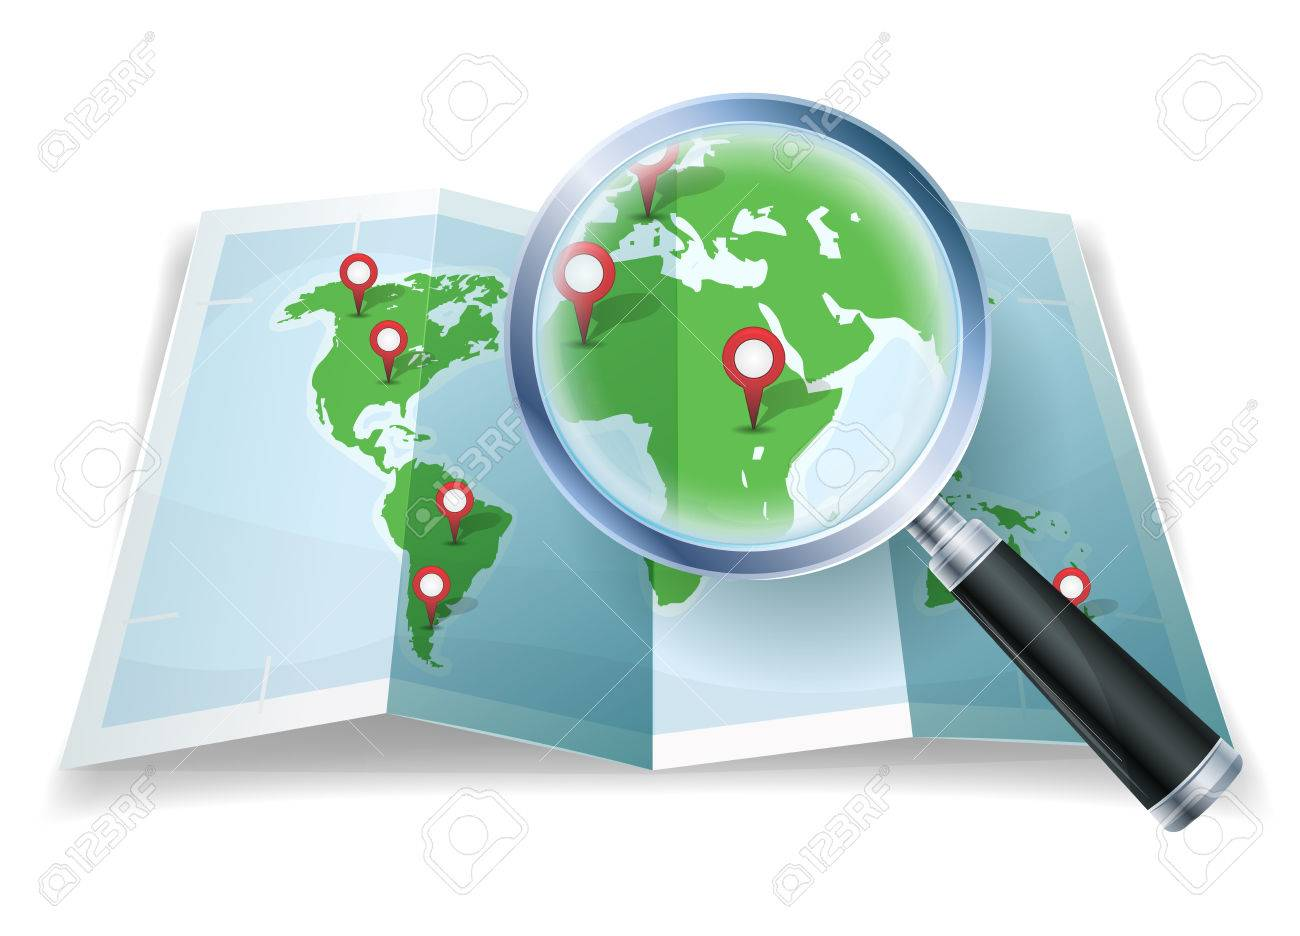 Illustration of a cartoon world map with magnifying glass scaling illustration of a cartoon world map with magnifying glass scaling details stock vector 79277630 gumiabroncs